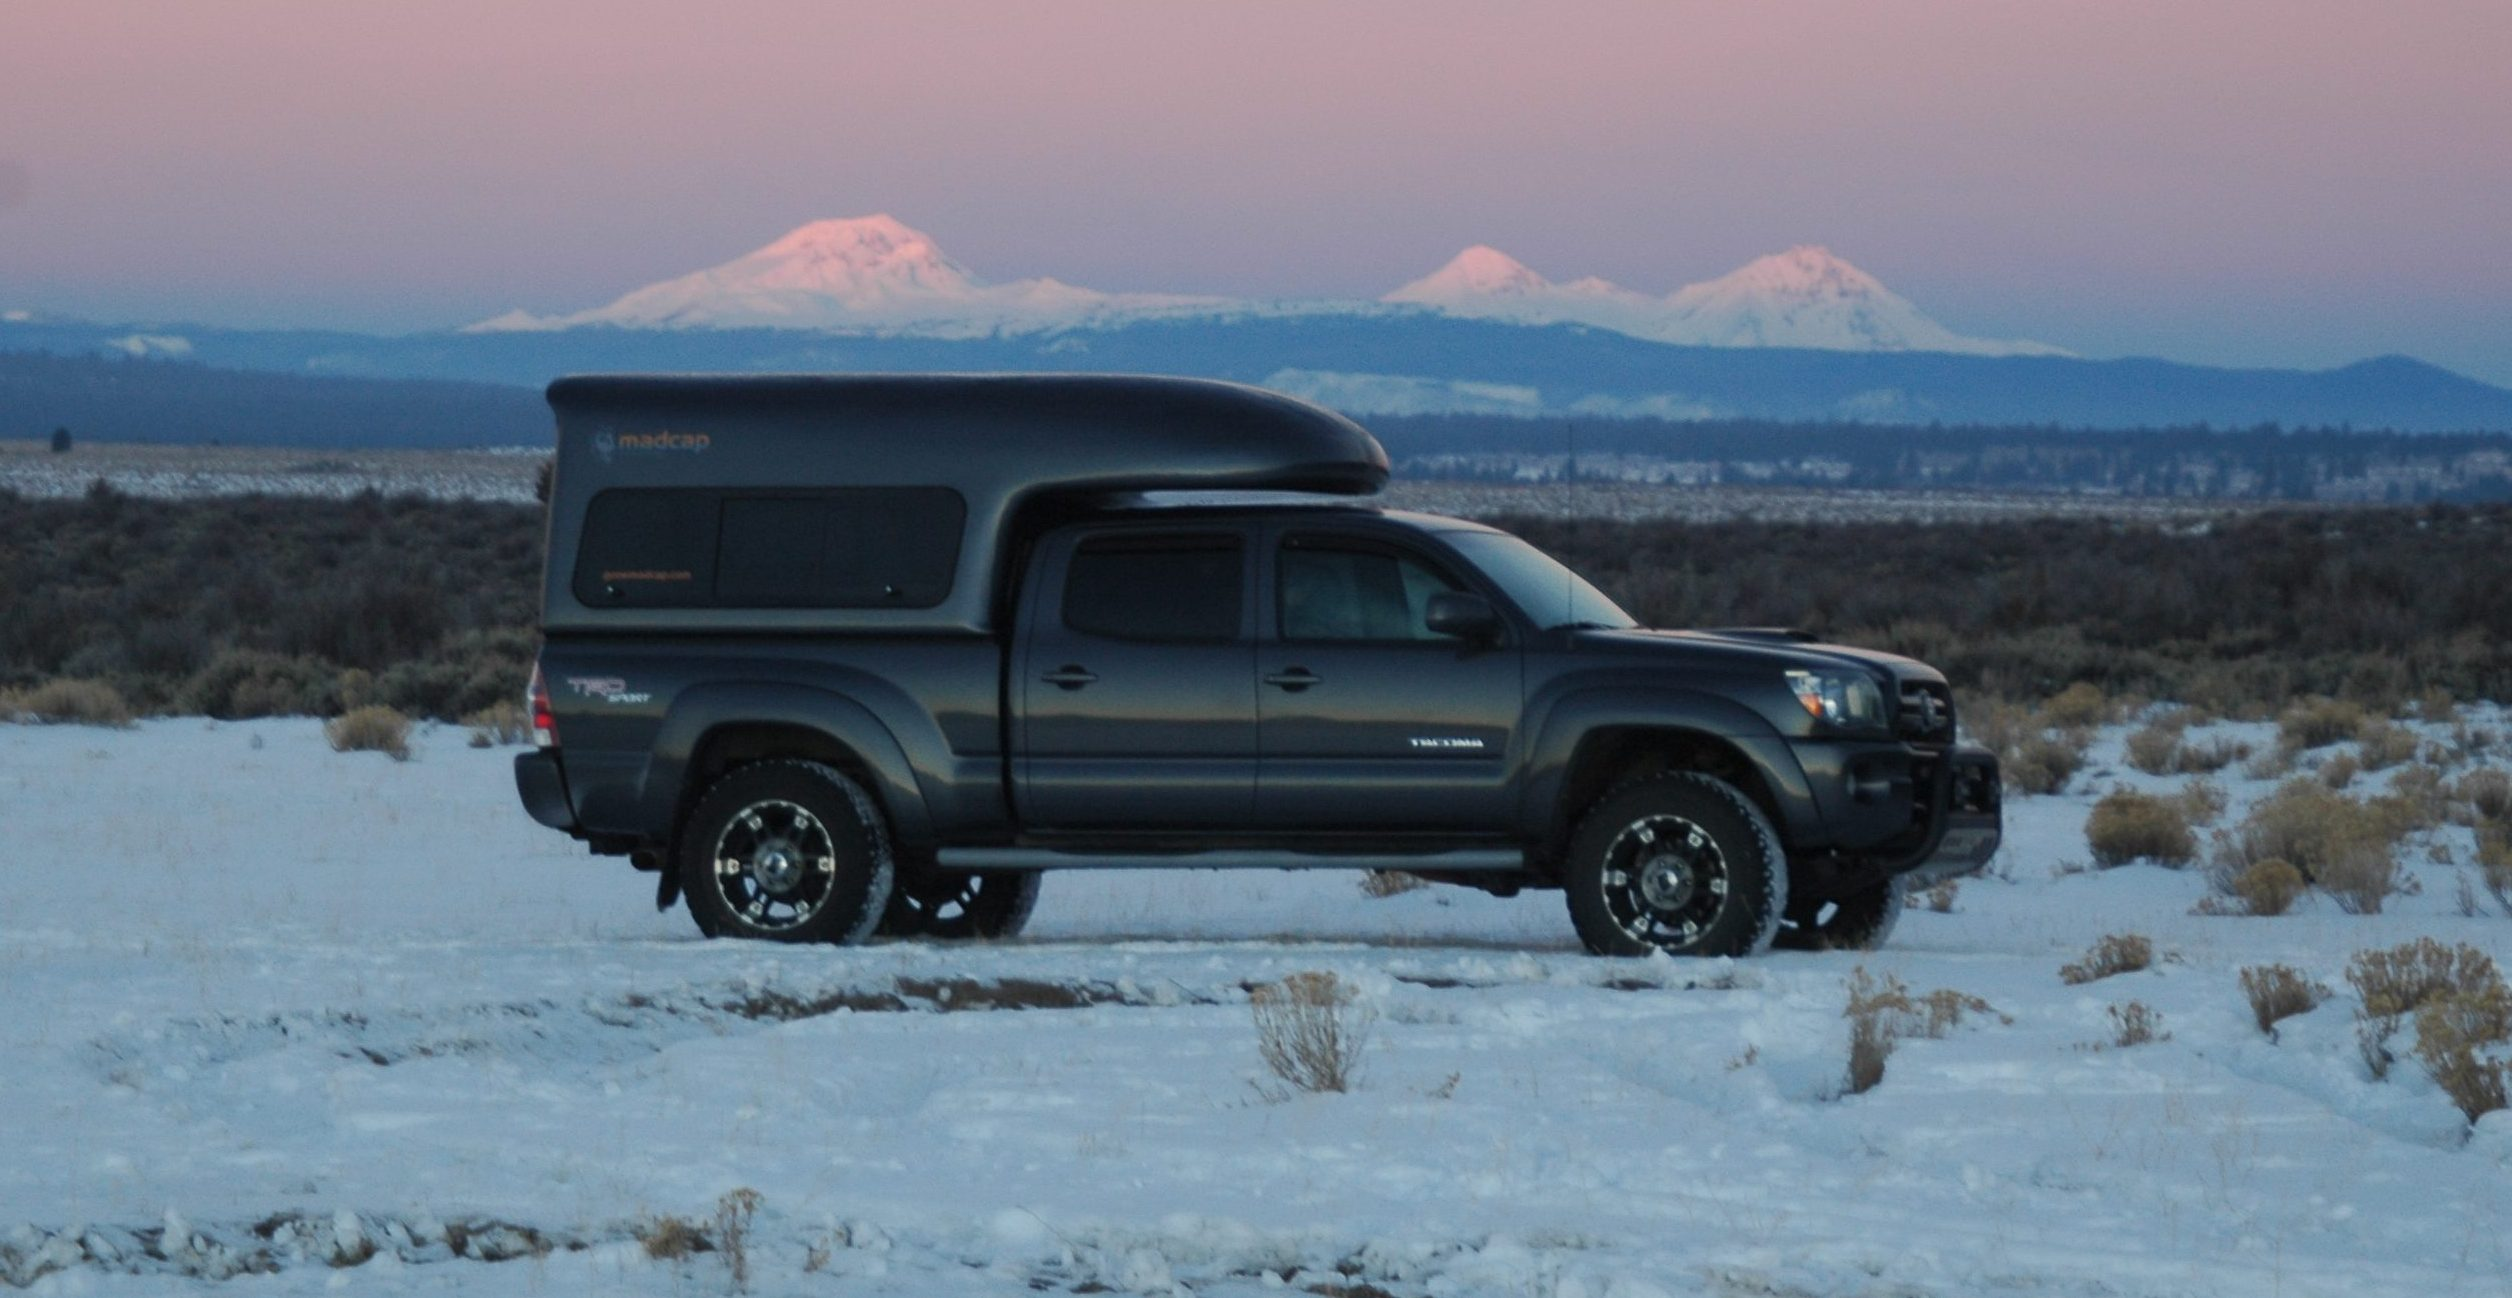 madcap Adventure Campers Toyota Tacoma composite approach